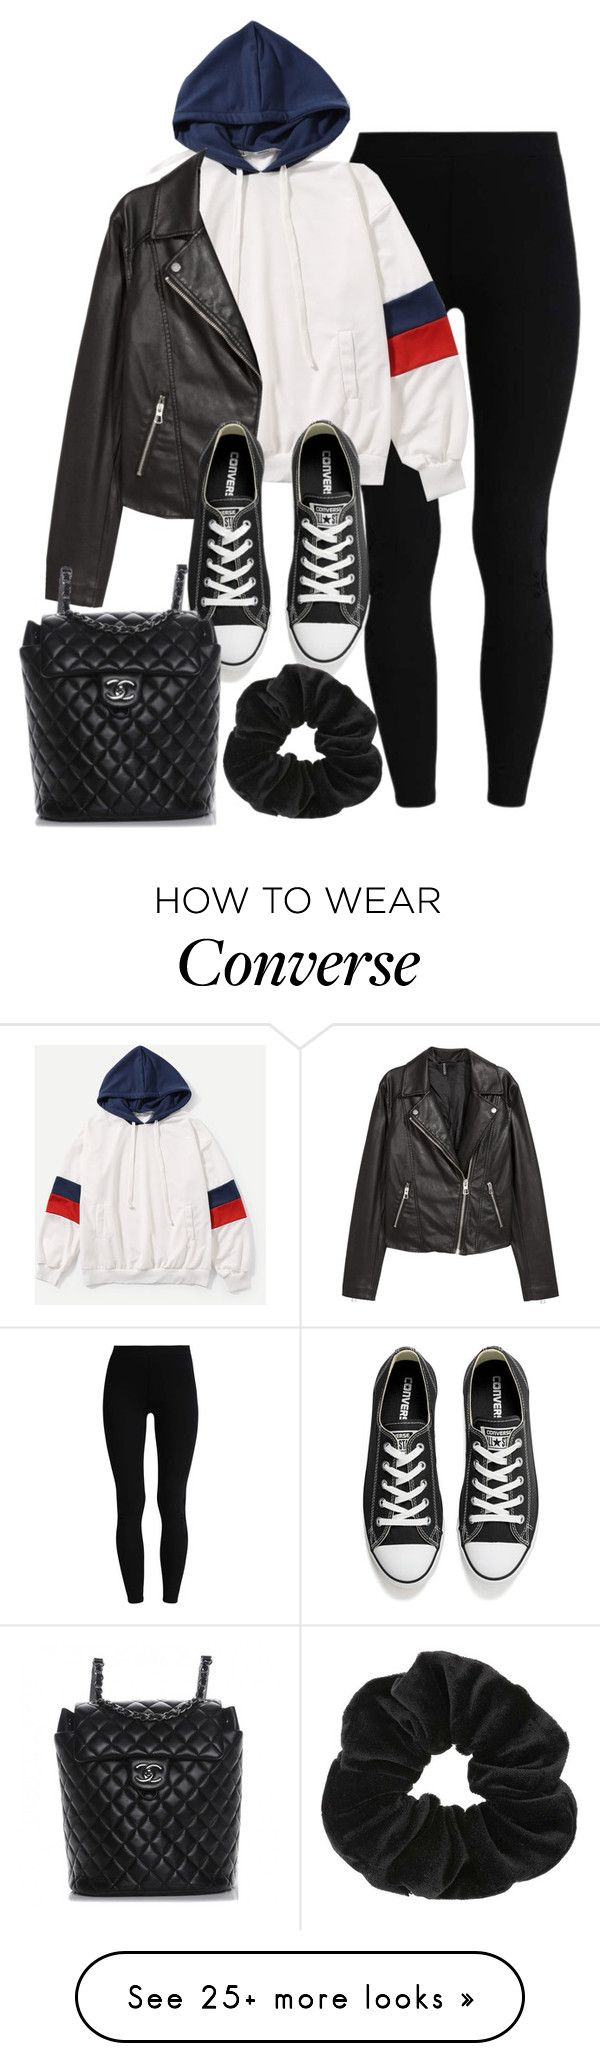 """Sin título #14260"" by vany-alvarado on Polyvore featuring H&M, Converse, Chanel and Miss Selfridge"